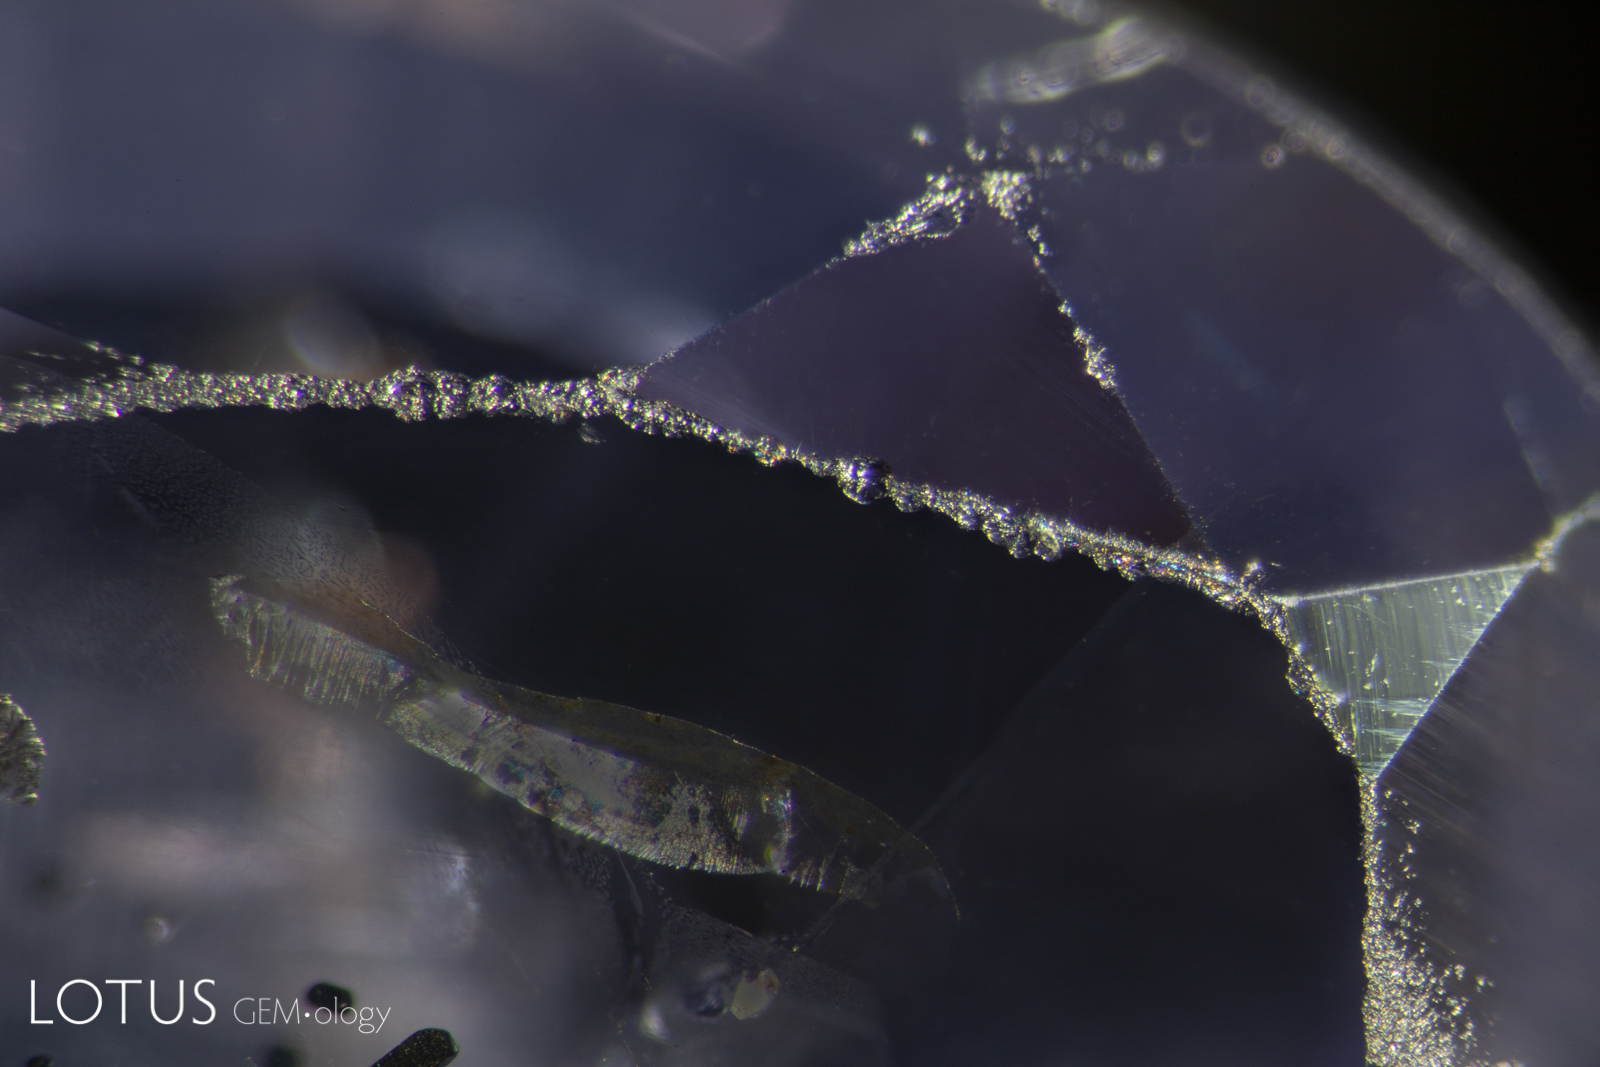 Untreated Ceylon sapphire showing wear marks with extensive facet abrasions and chips. This amply demonstrates that sapphire is somewhat brittle by nature.